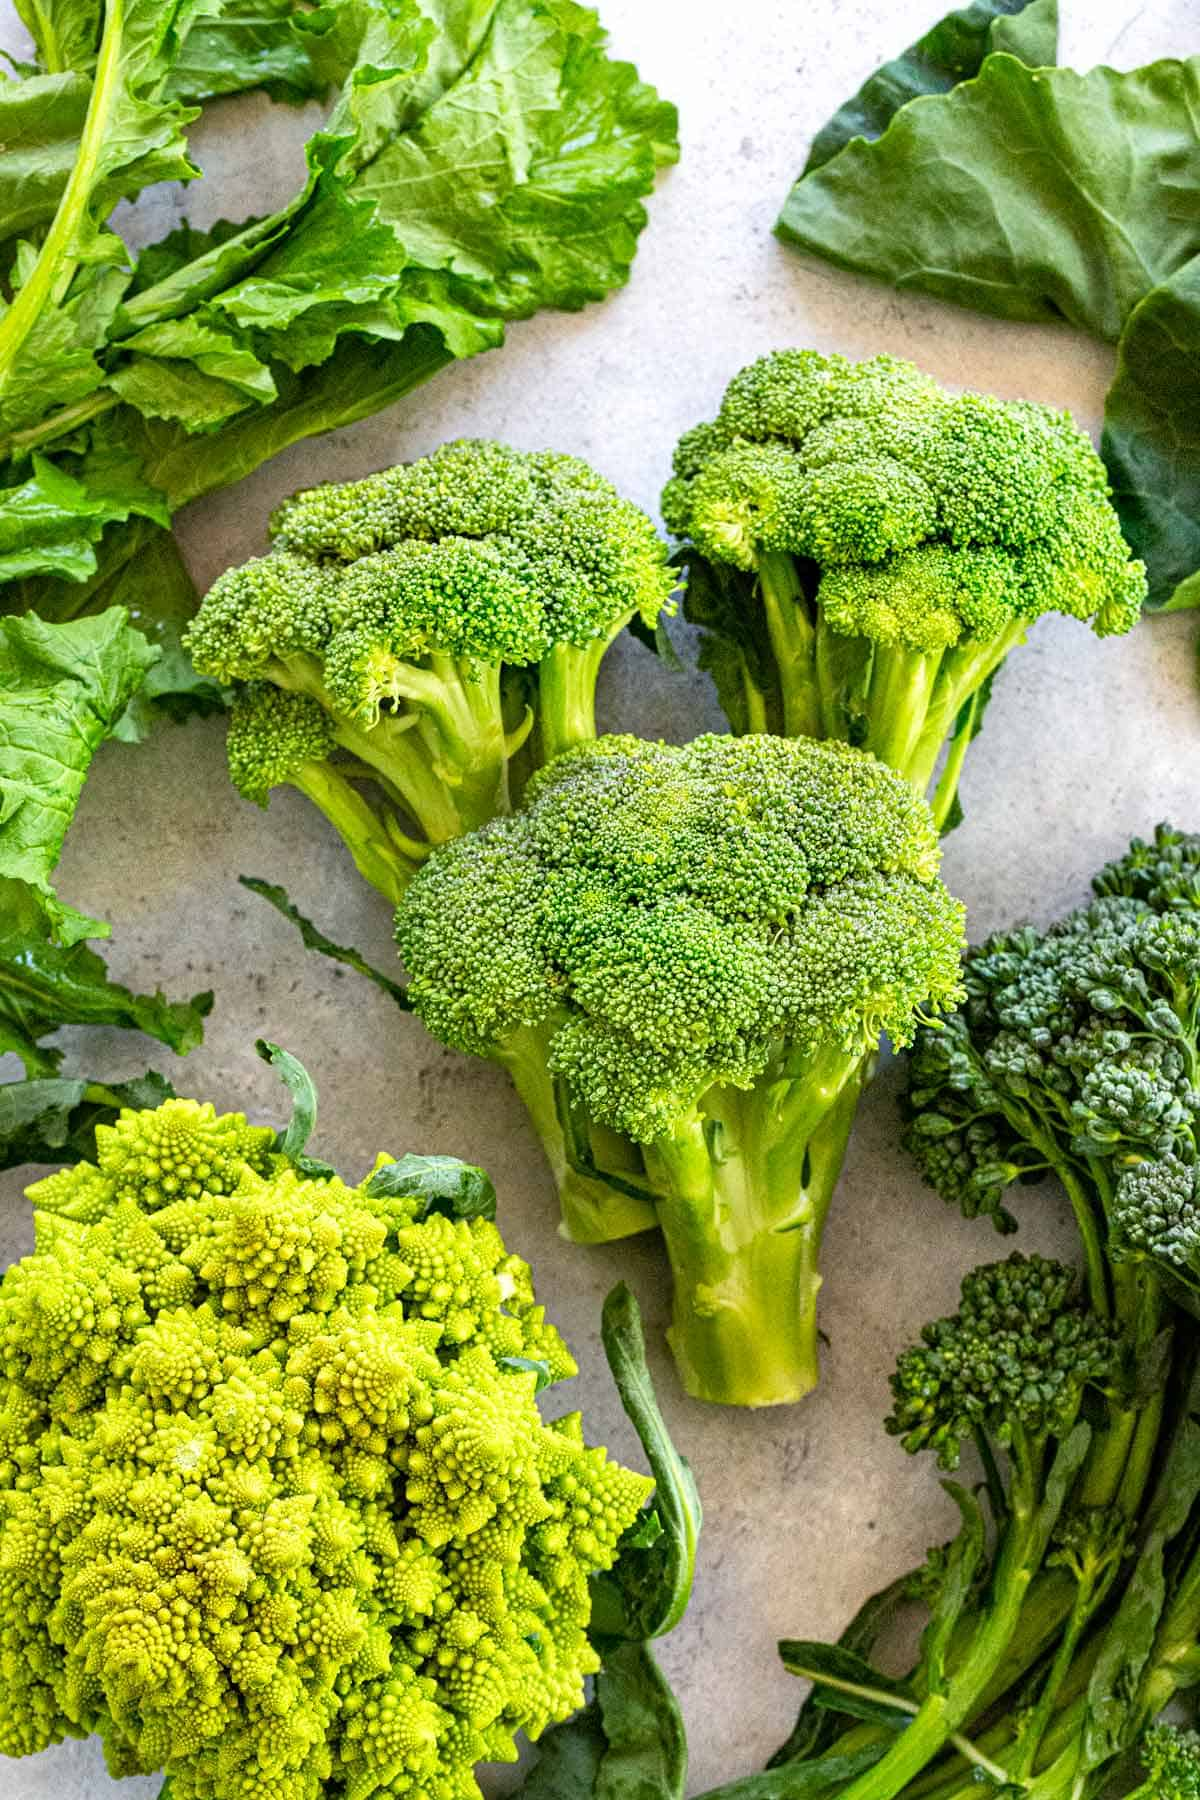 Did you know there are multiple types of broccoli? Oh yes, there's a whole world of this deep green veggie. #broccoli #vegetables #farmersmarket